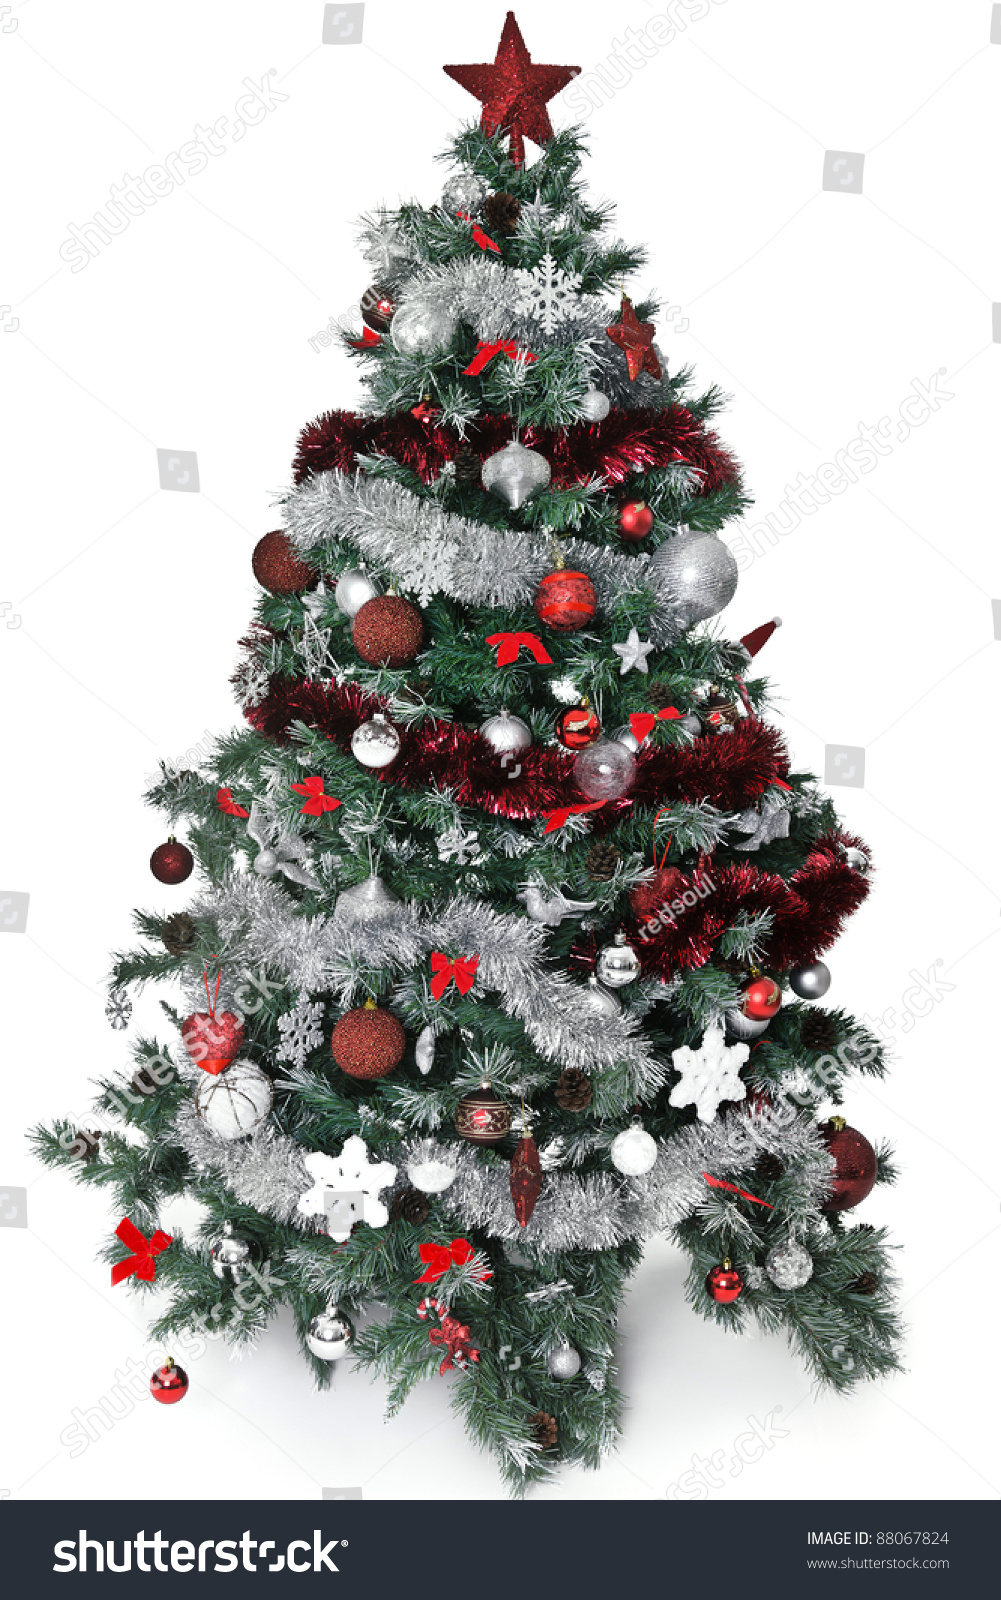 Christmas tree silver red decoration stock photo 88067824 for Red and silver christmas tree decorations